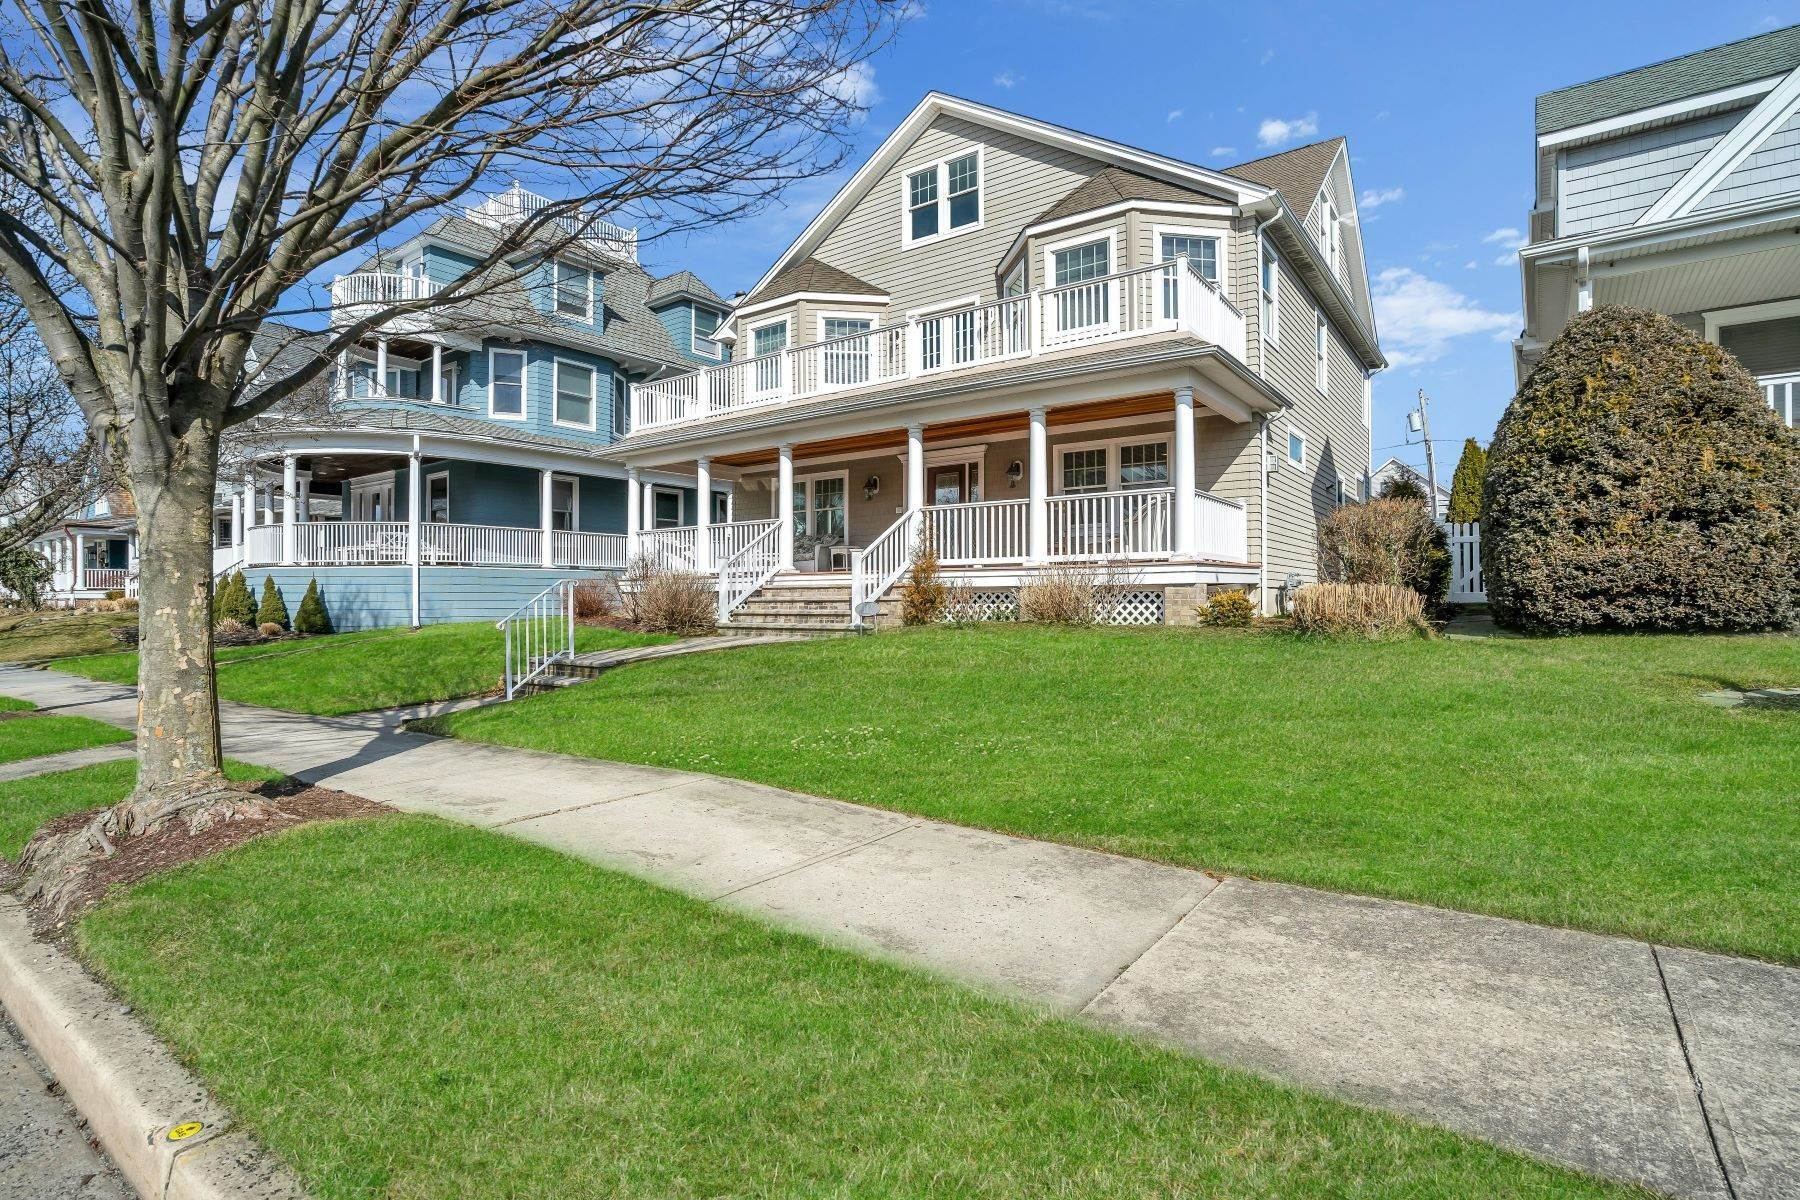 Single Family Homes for Sale at Spacious and Modern Home 112 Sylvania Avenue Avon by the Sea, New Jersey 07717 United States